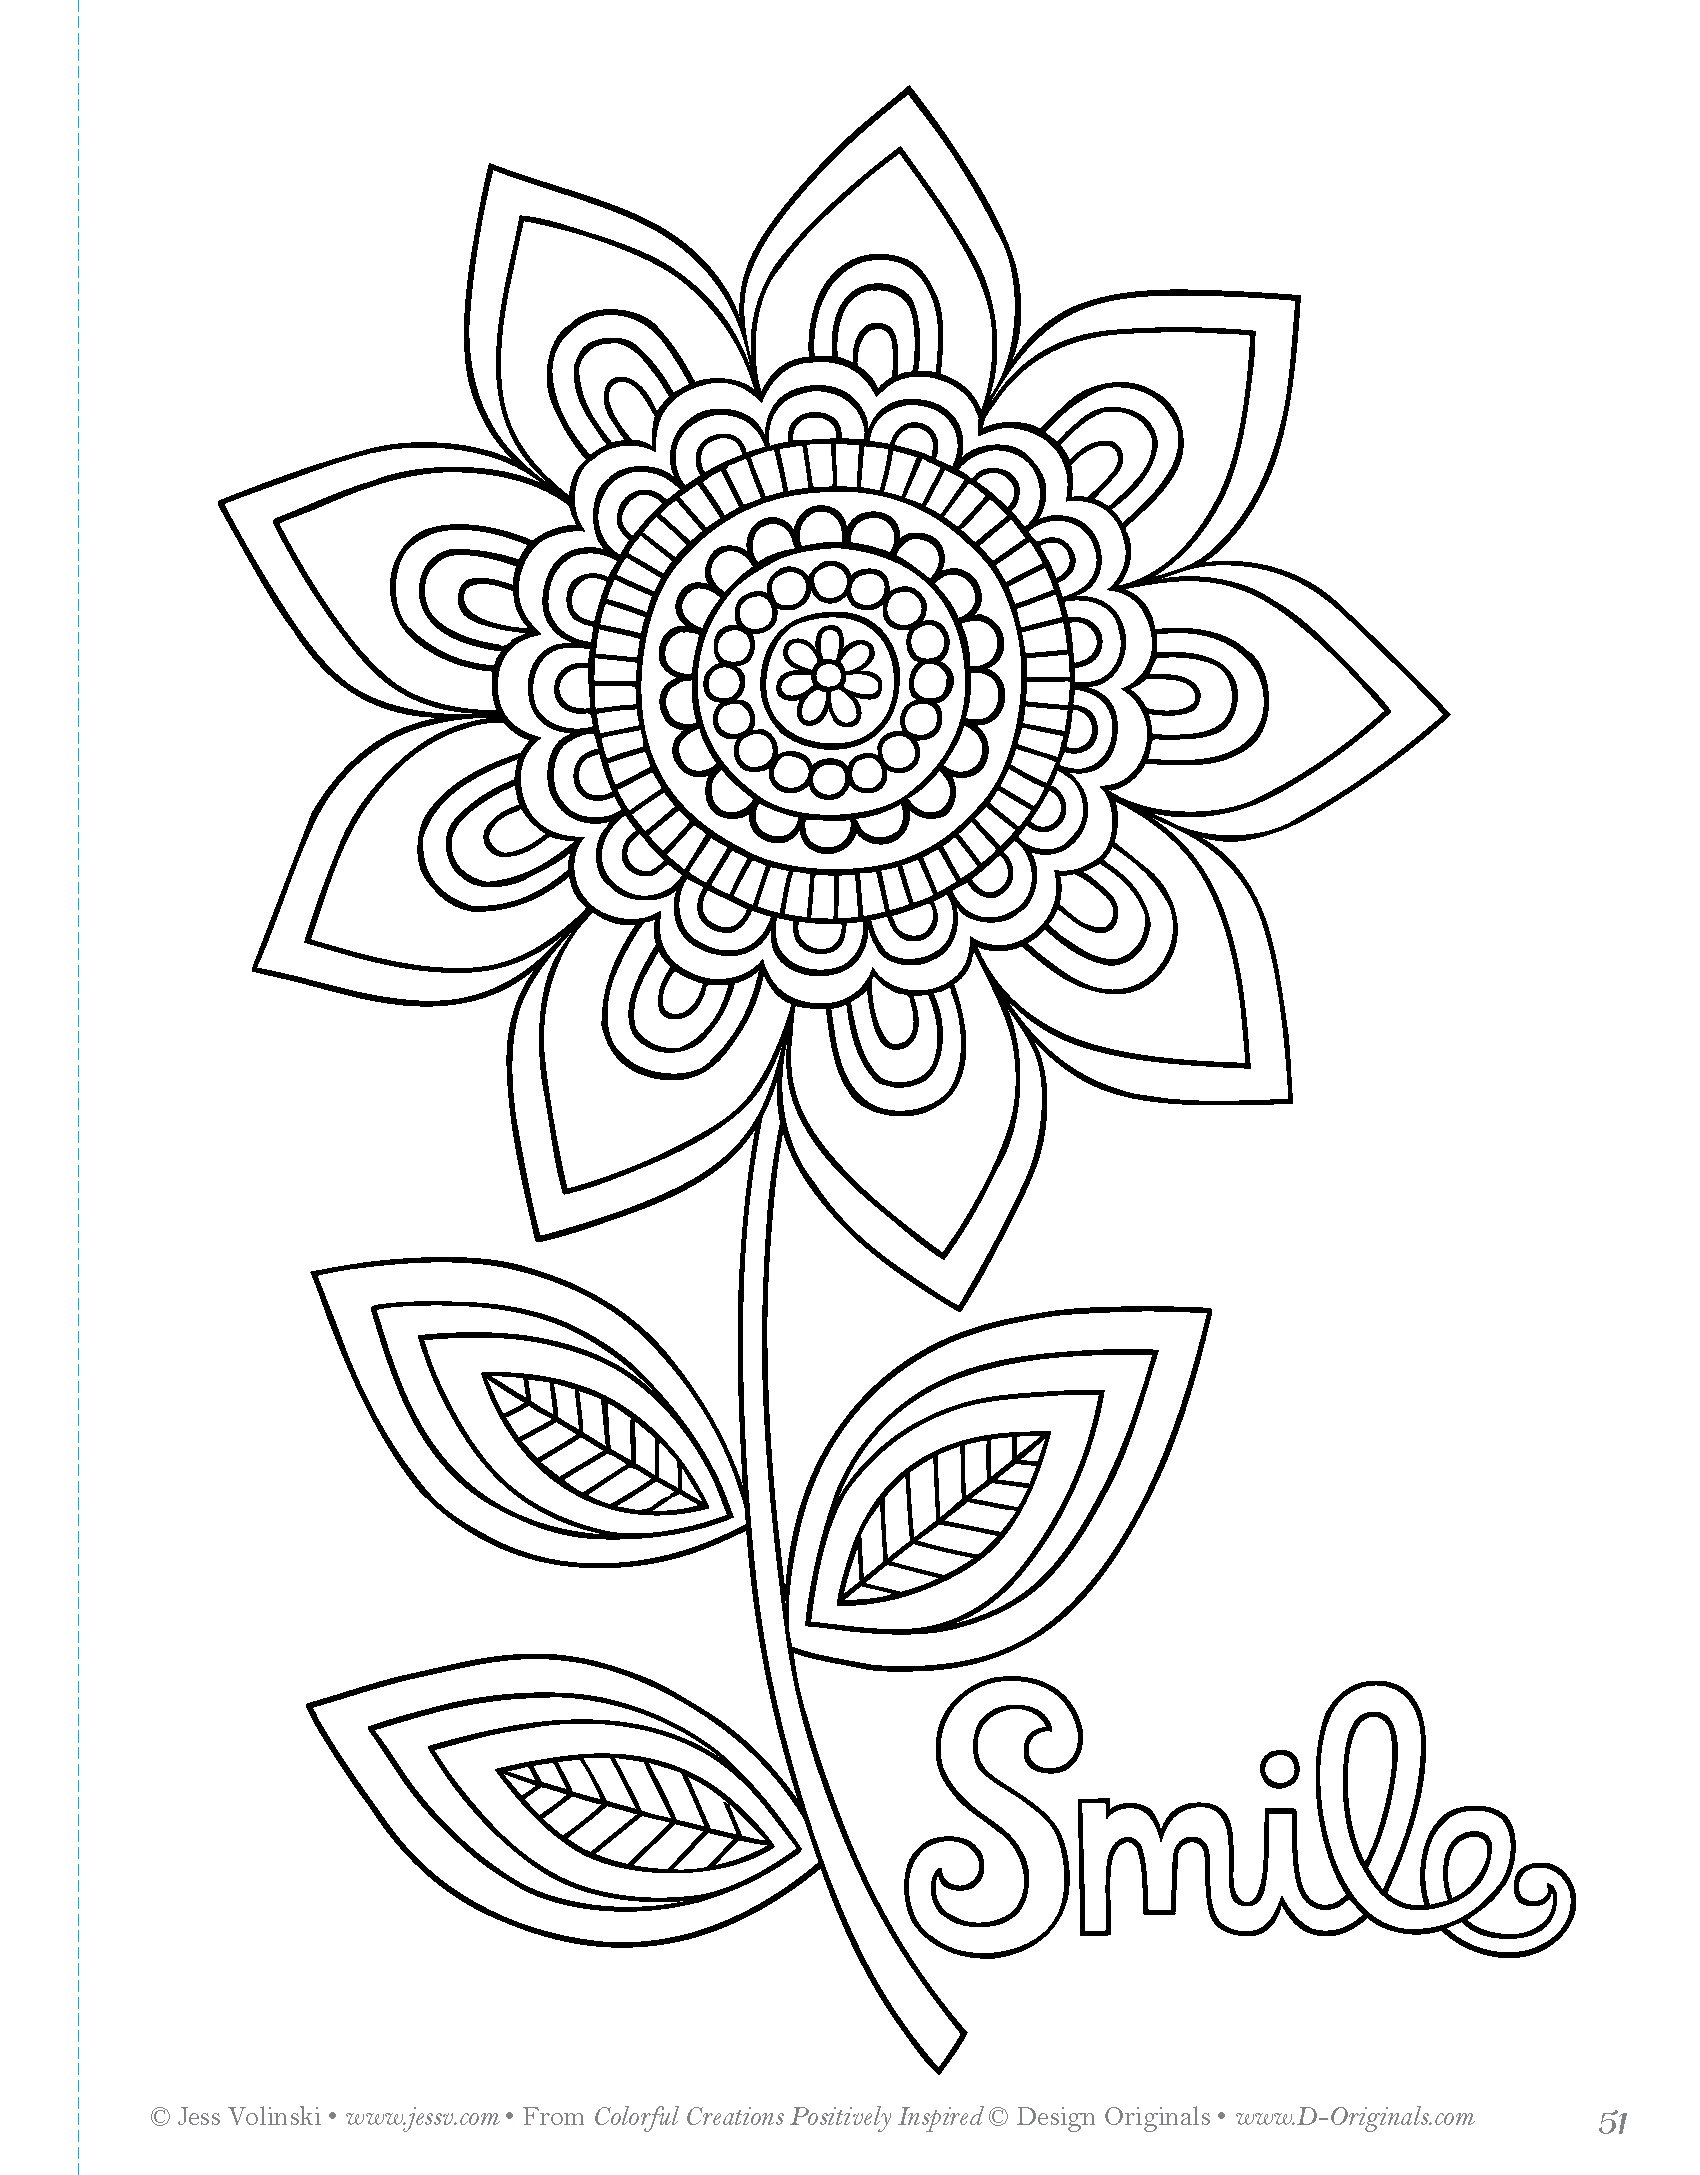 Amazon Colorful Creations Positively Inspired Coloring Book Pages Designed To Inspire Creativity Design Originals 32 Uplifting